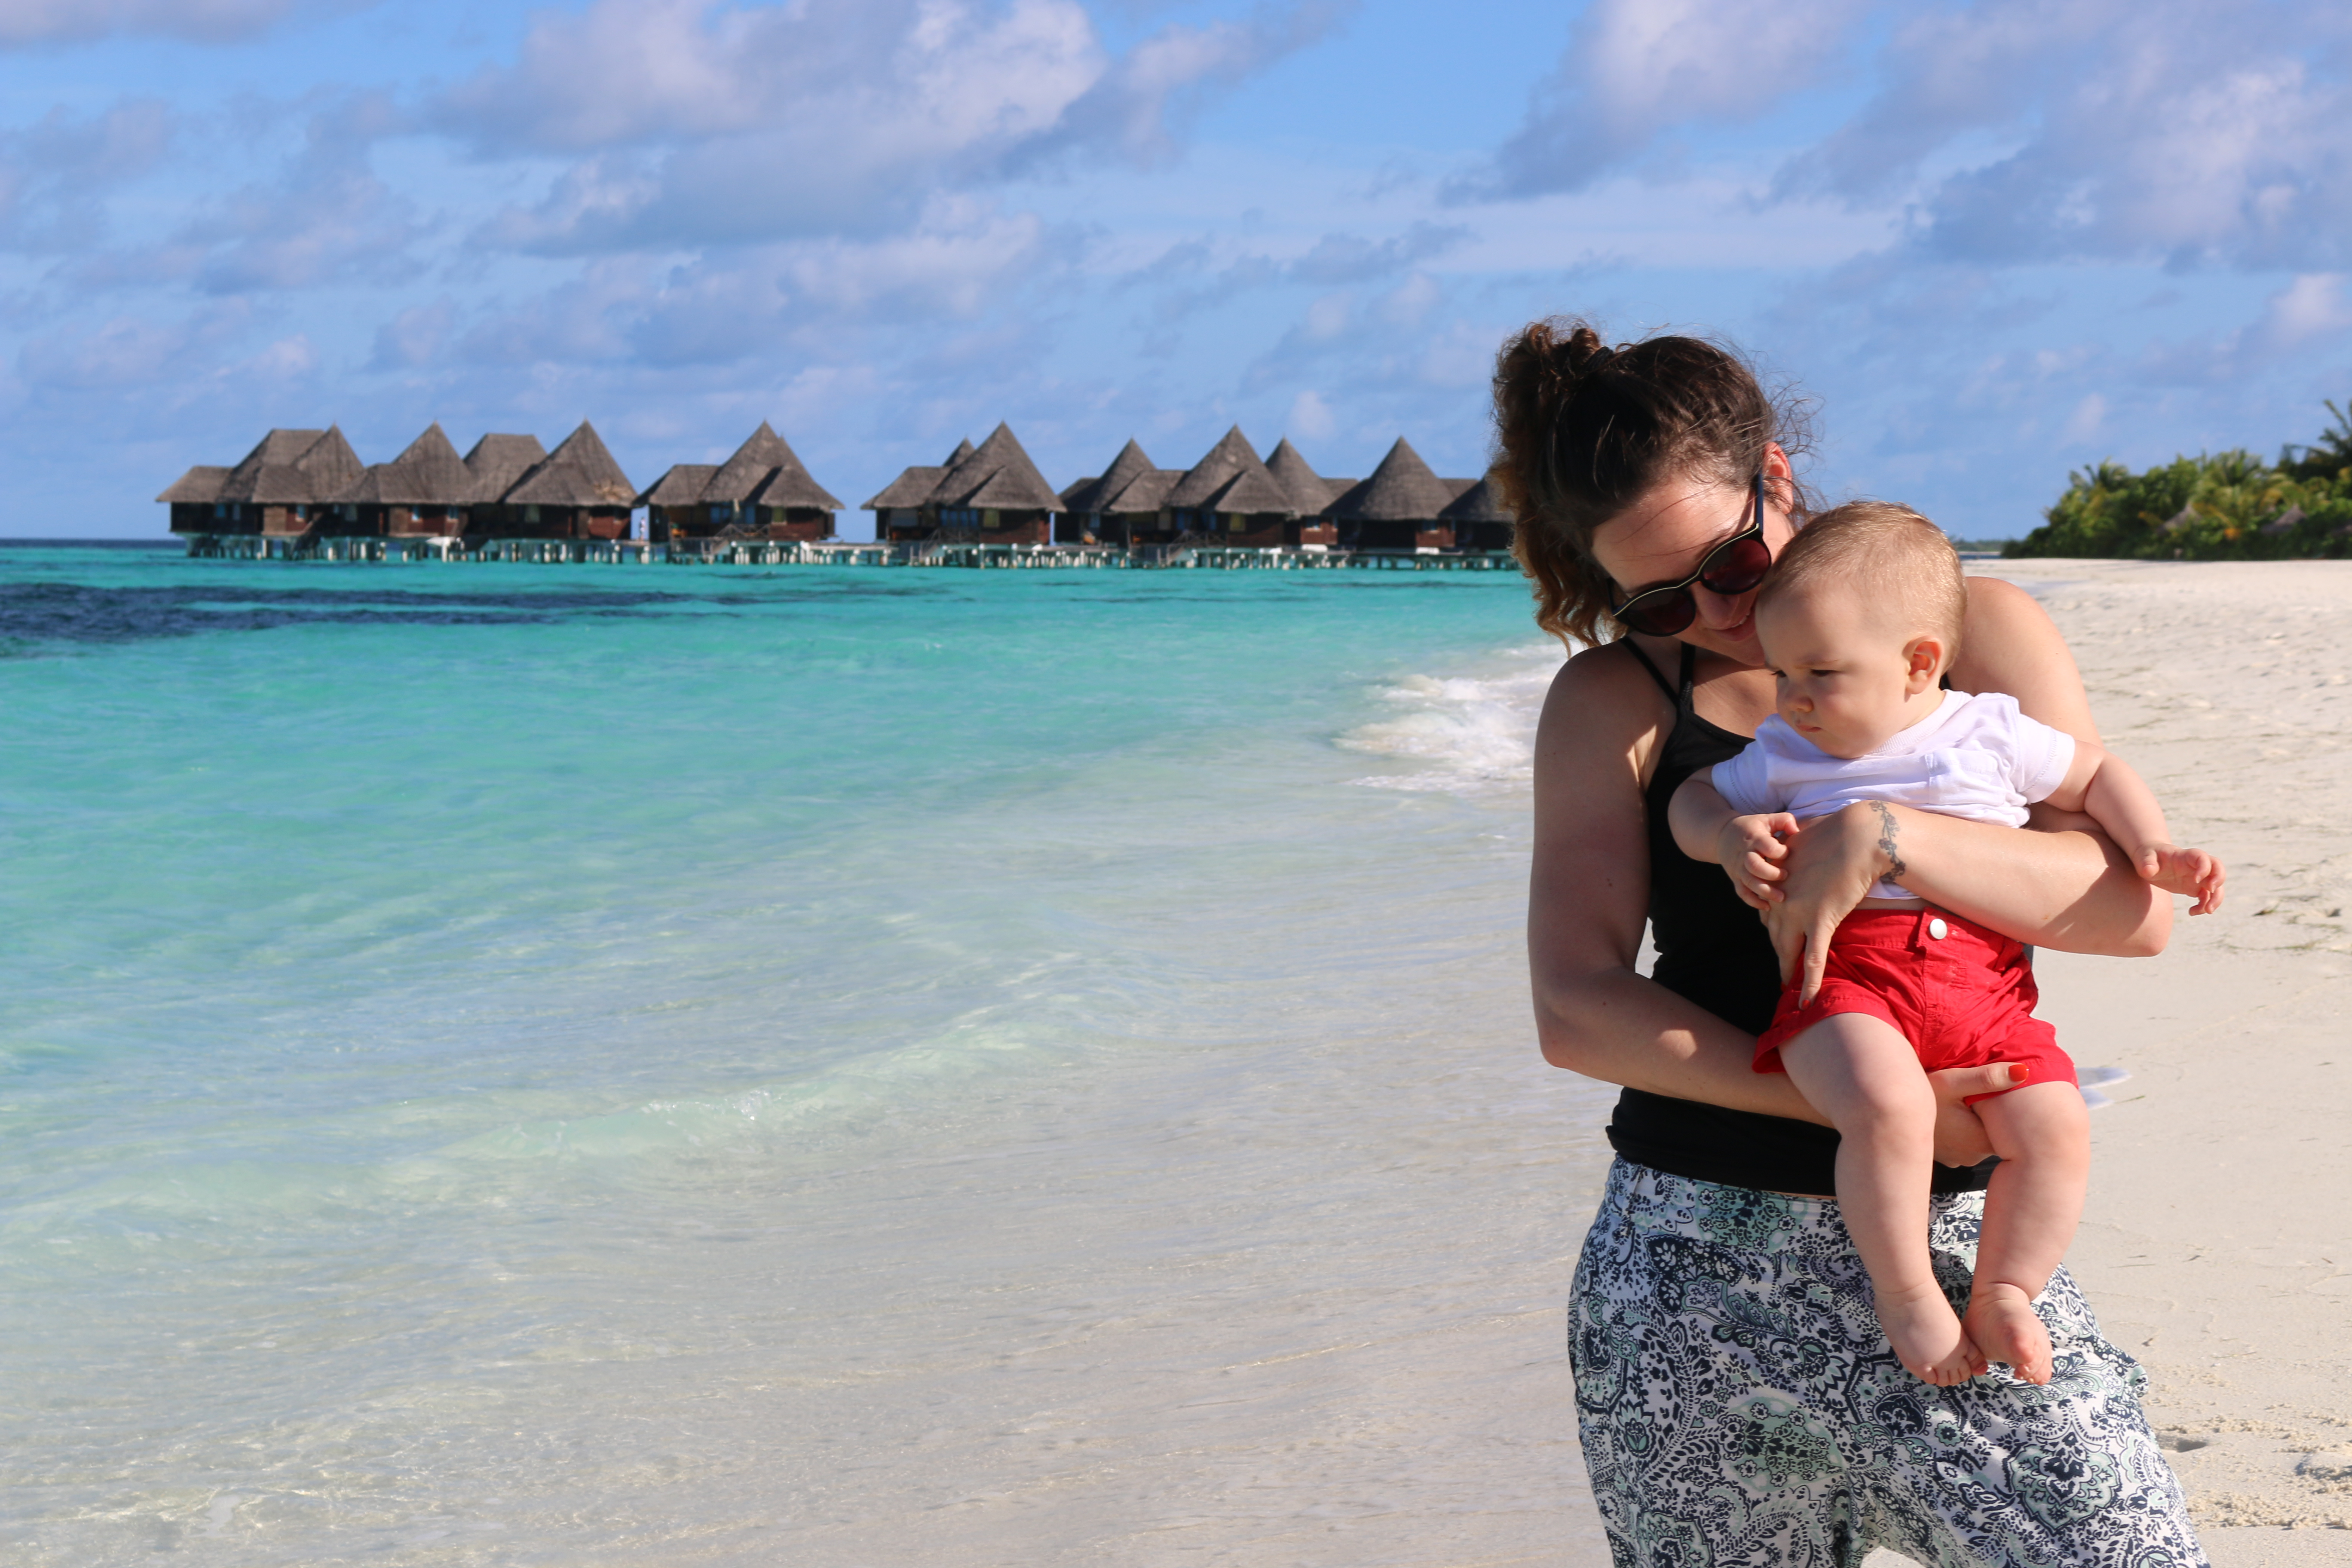 Monica Stott The Travel Hack in the Maldives with baby George aged 6 months